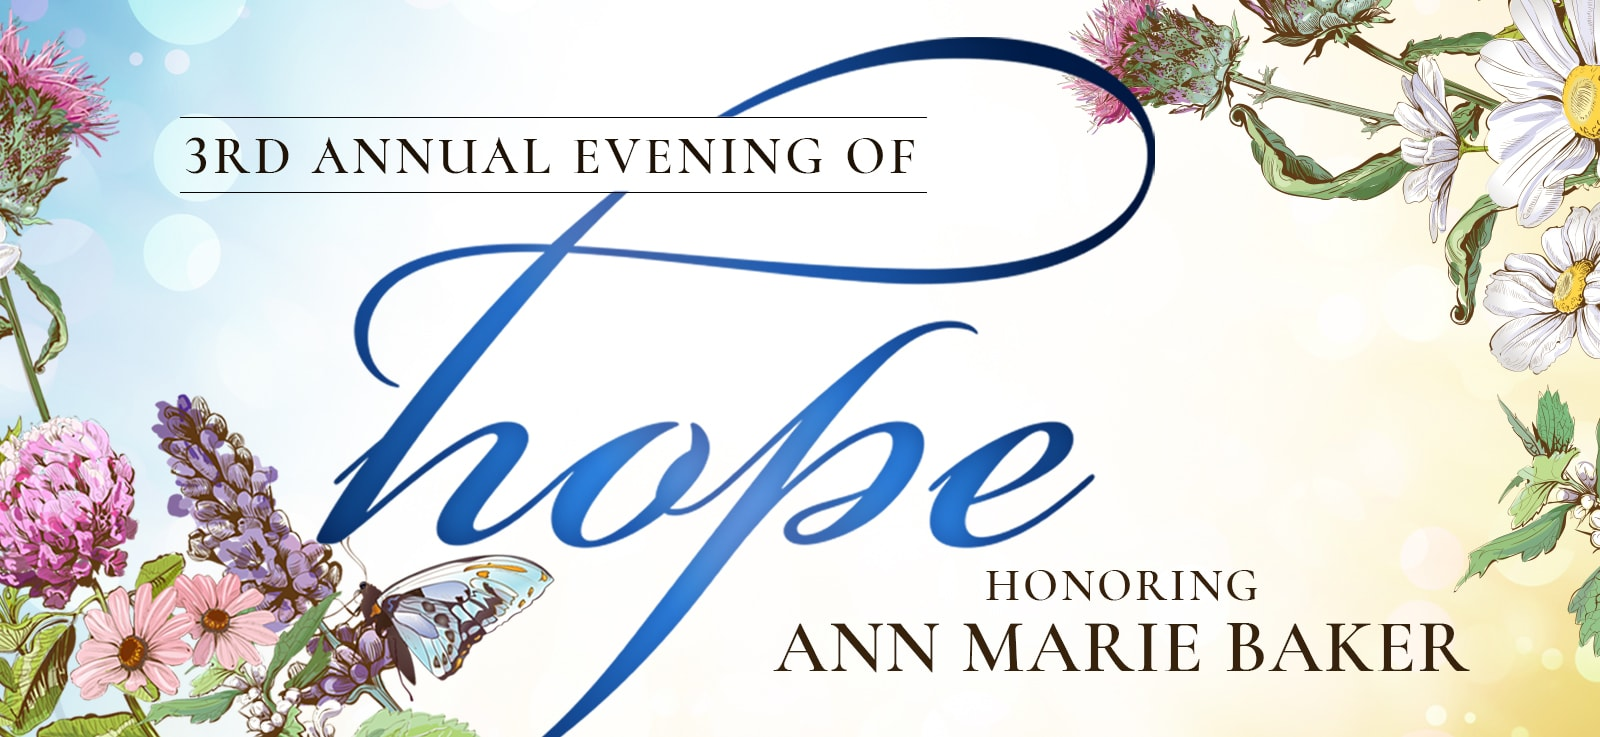 3rd Annual Evening of HOPE